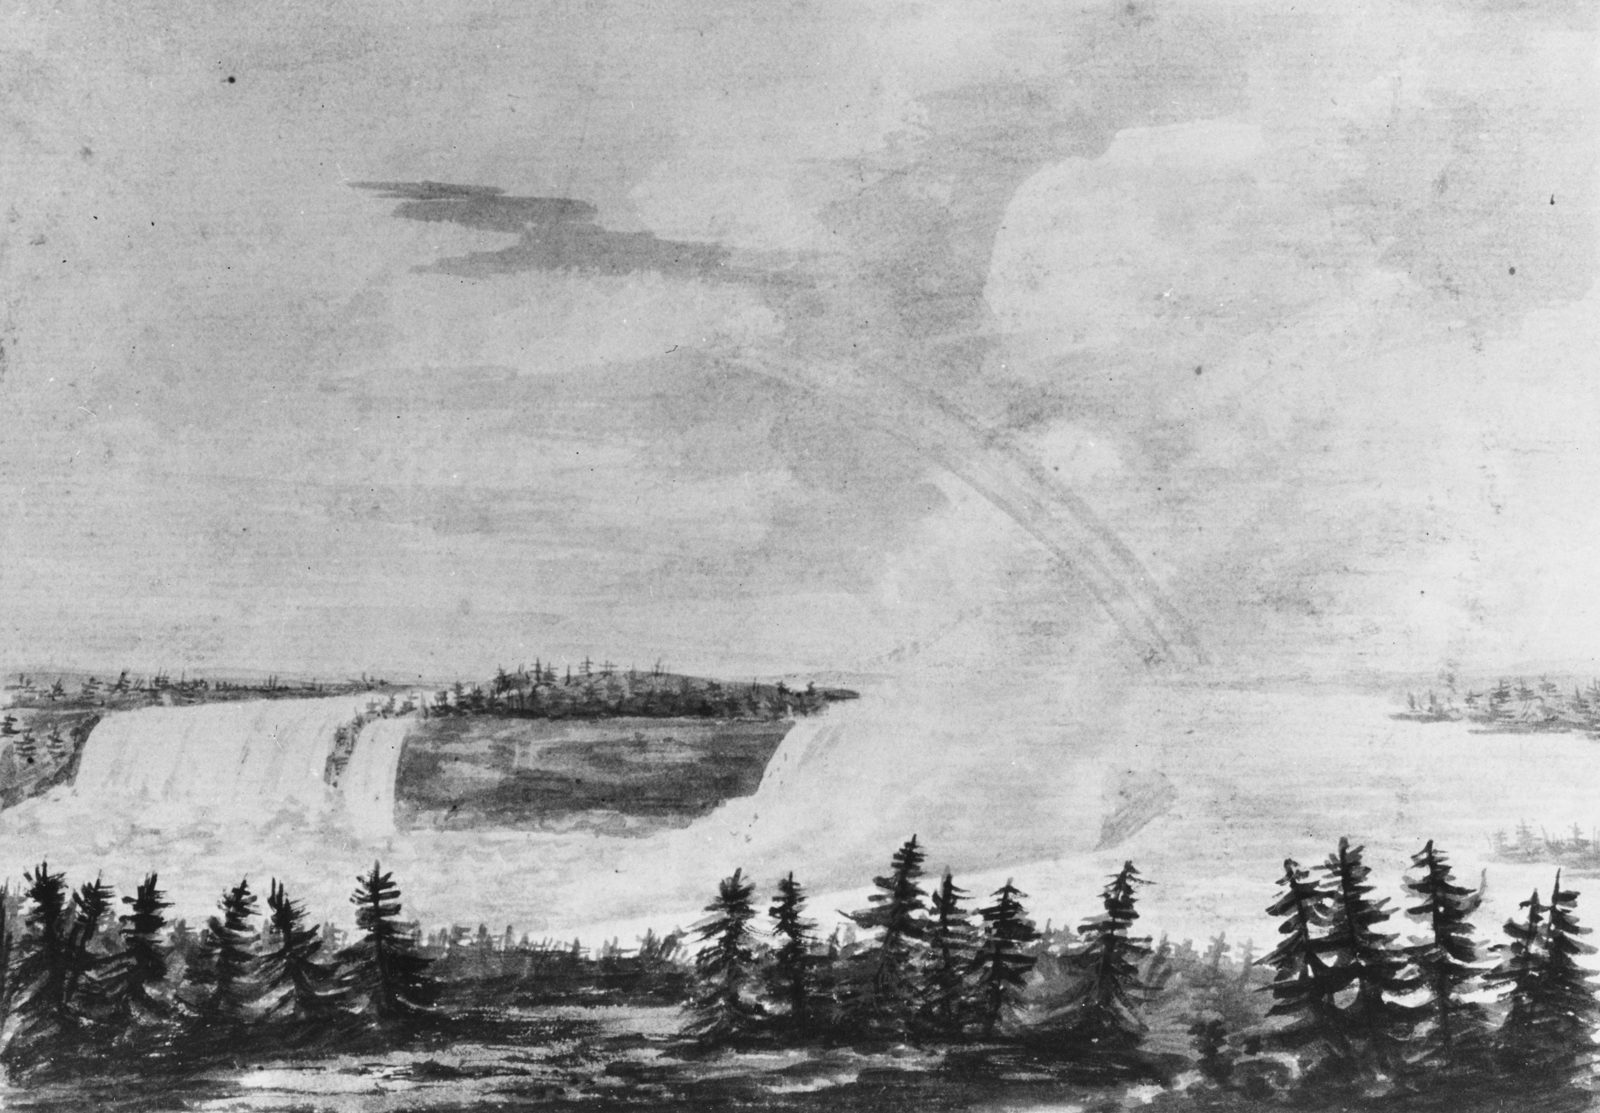 The Falls of Niagara (Copy after an Engraving in The Port Folio Magazine, March 1810)